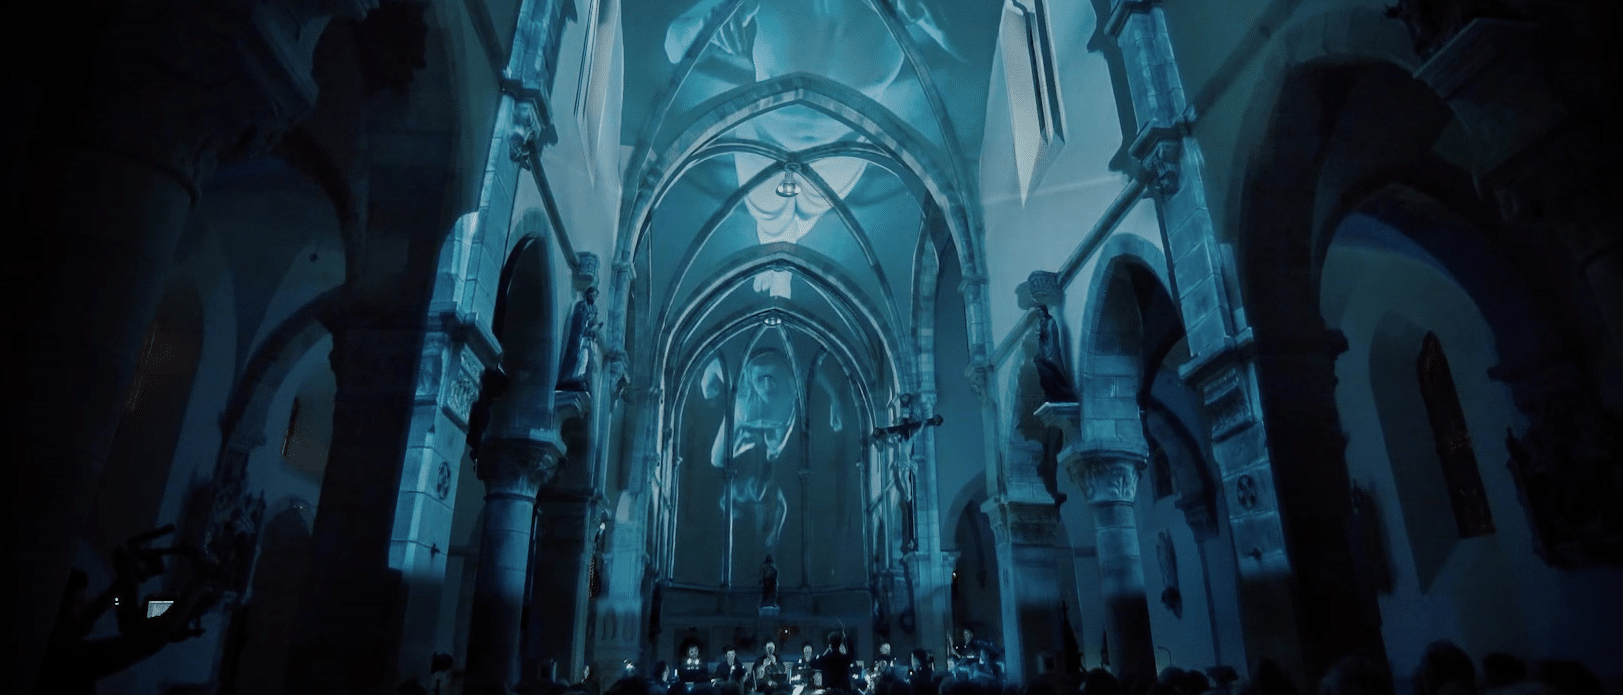 vidéo projection mapping avec orchestre musical